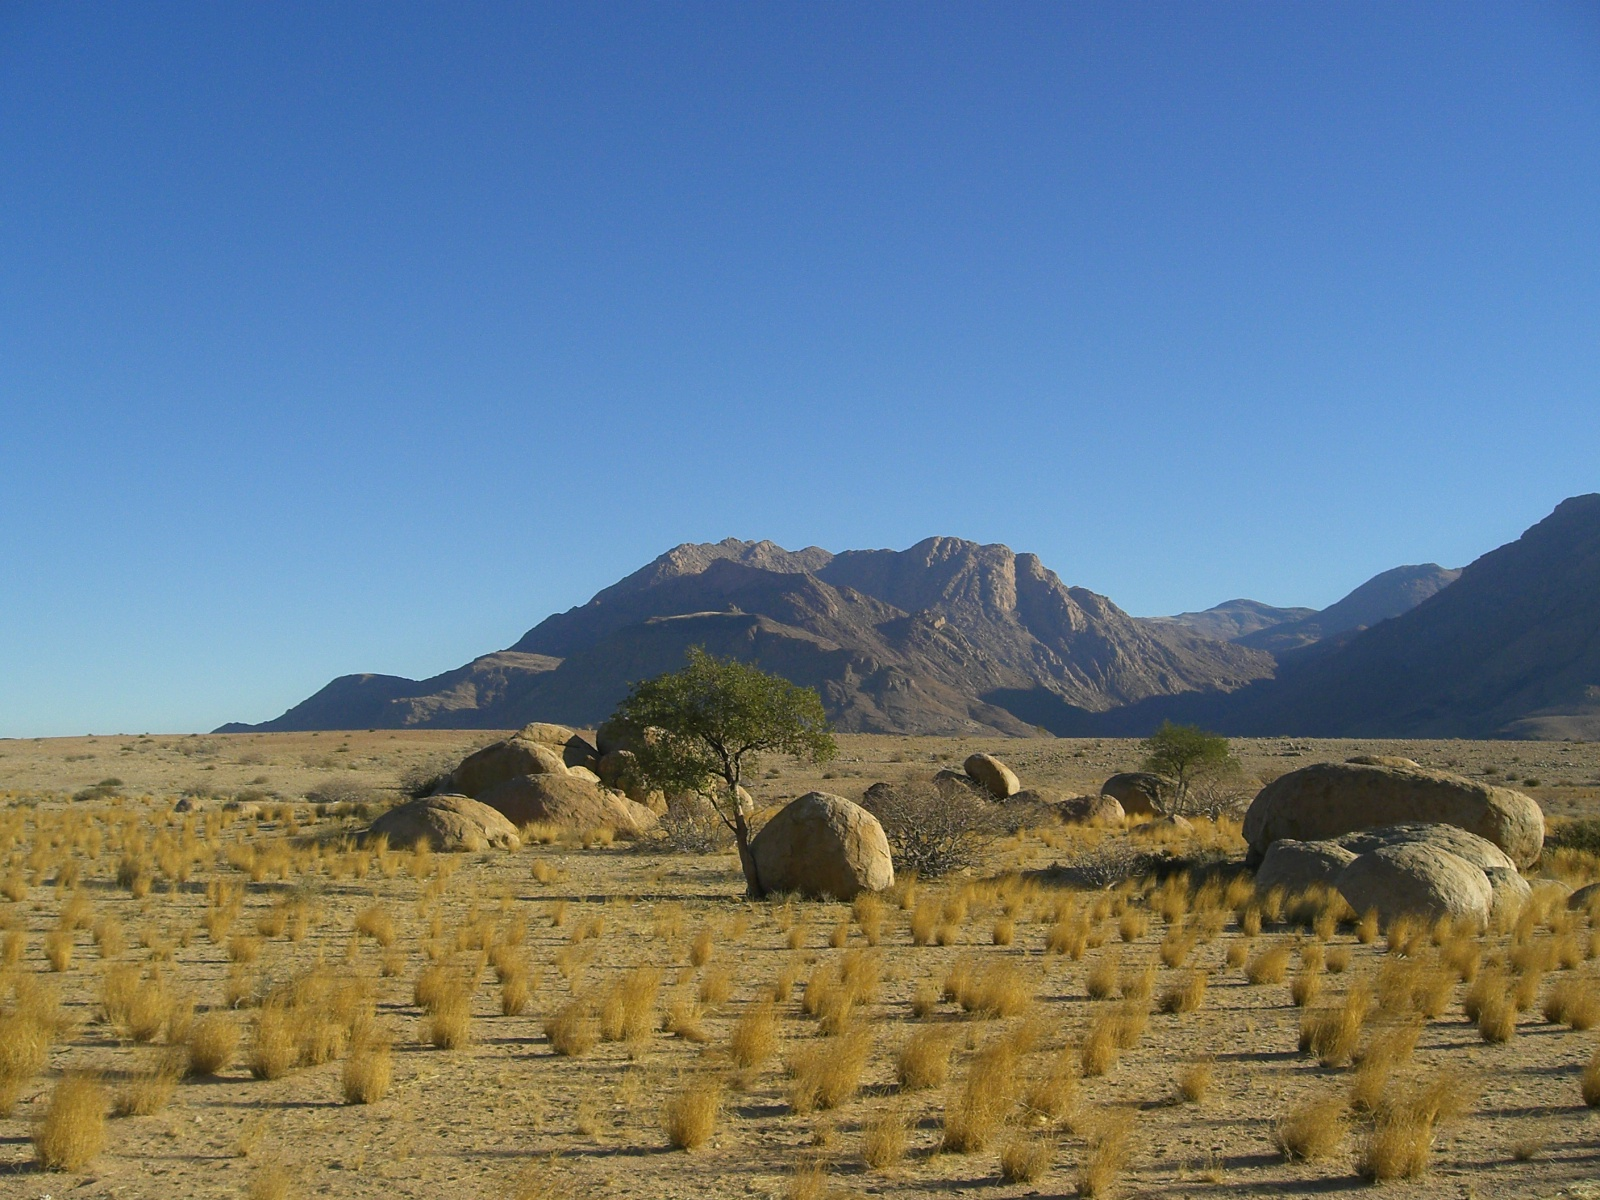 The 'Brandberg' - Namibia's highest mountain